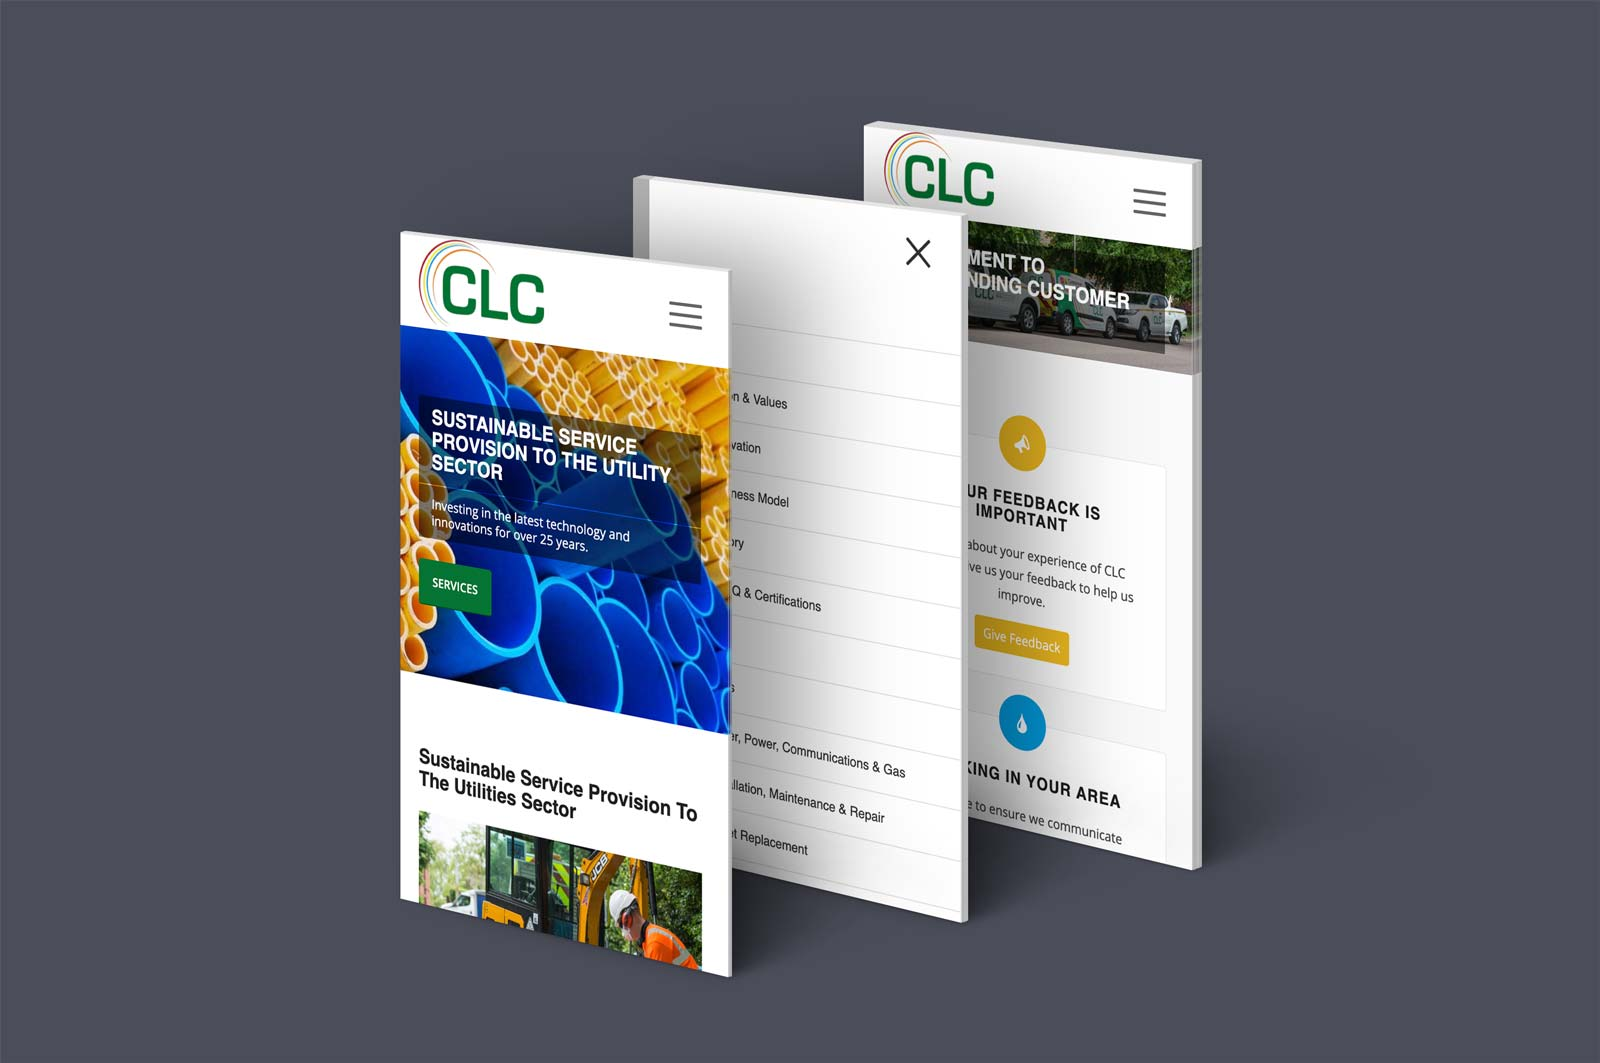 CLC Utilities website mobile page designs